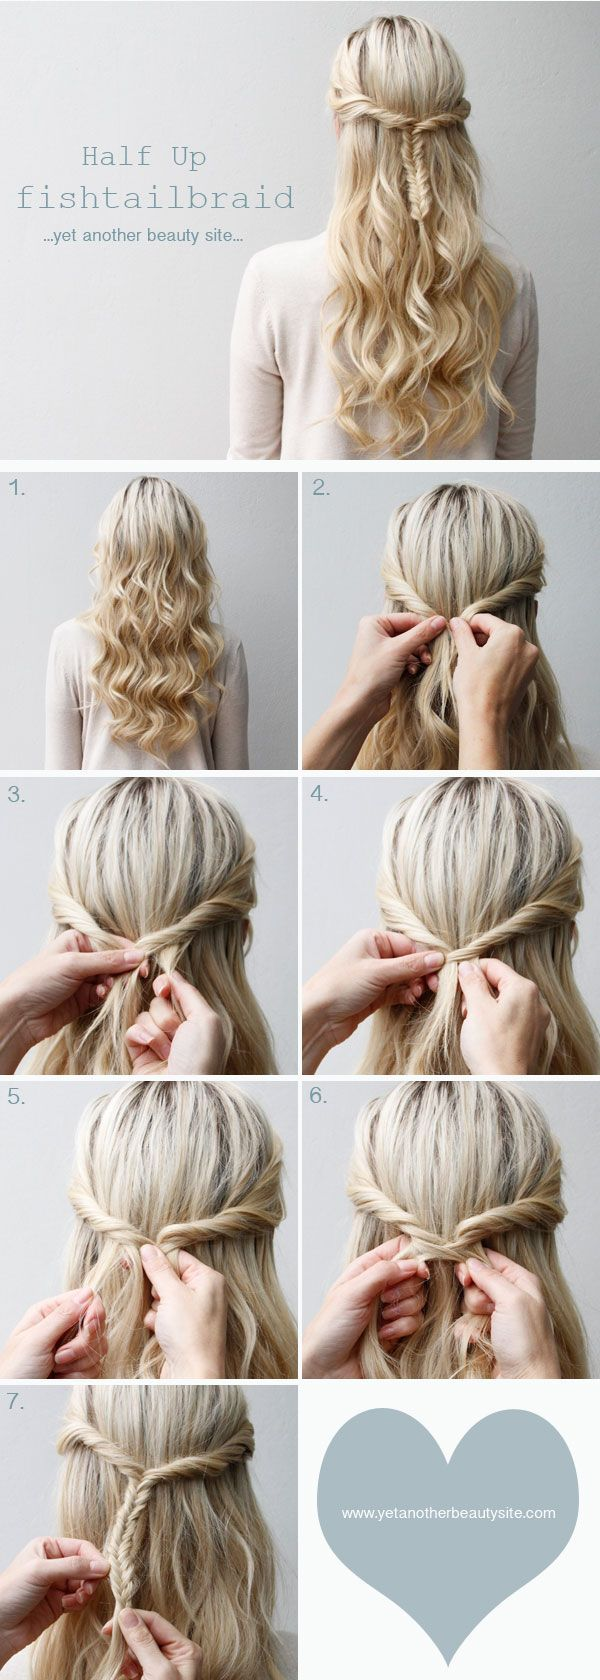 157 best Hair images on Pinterest | Hairstyle ideas, Hair ideas and ...